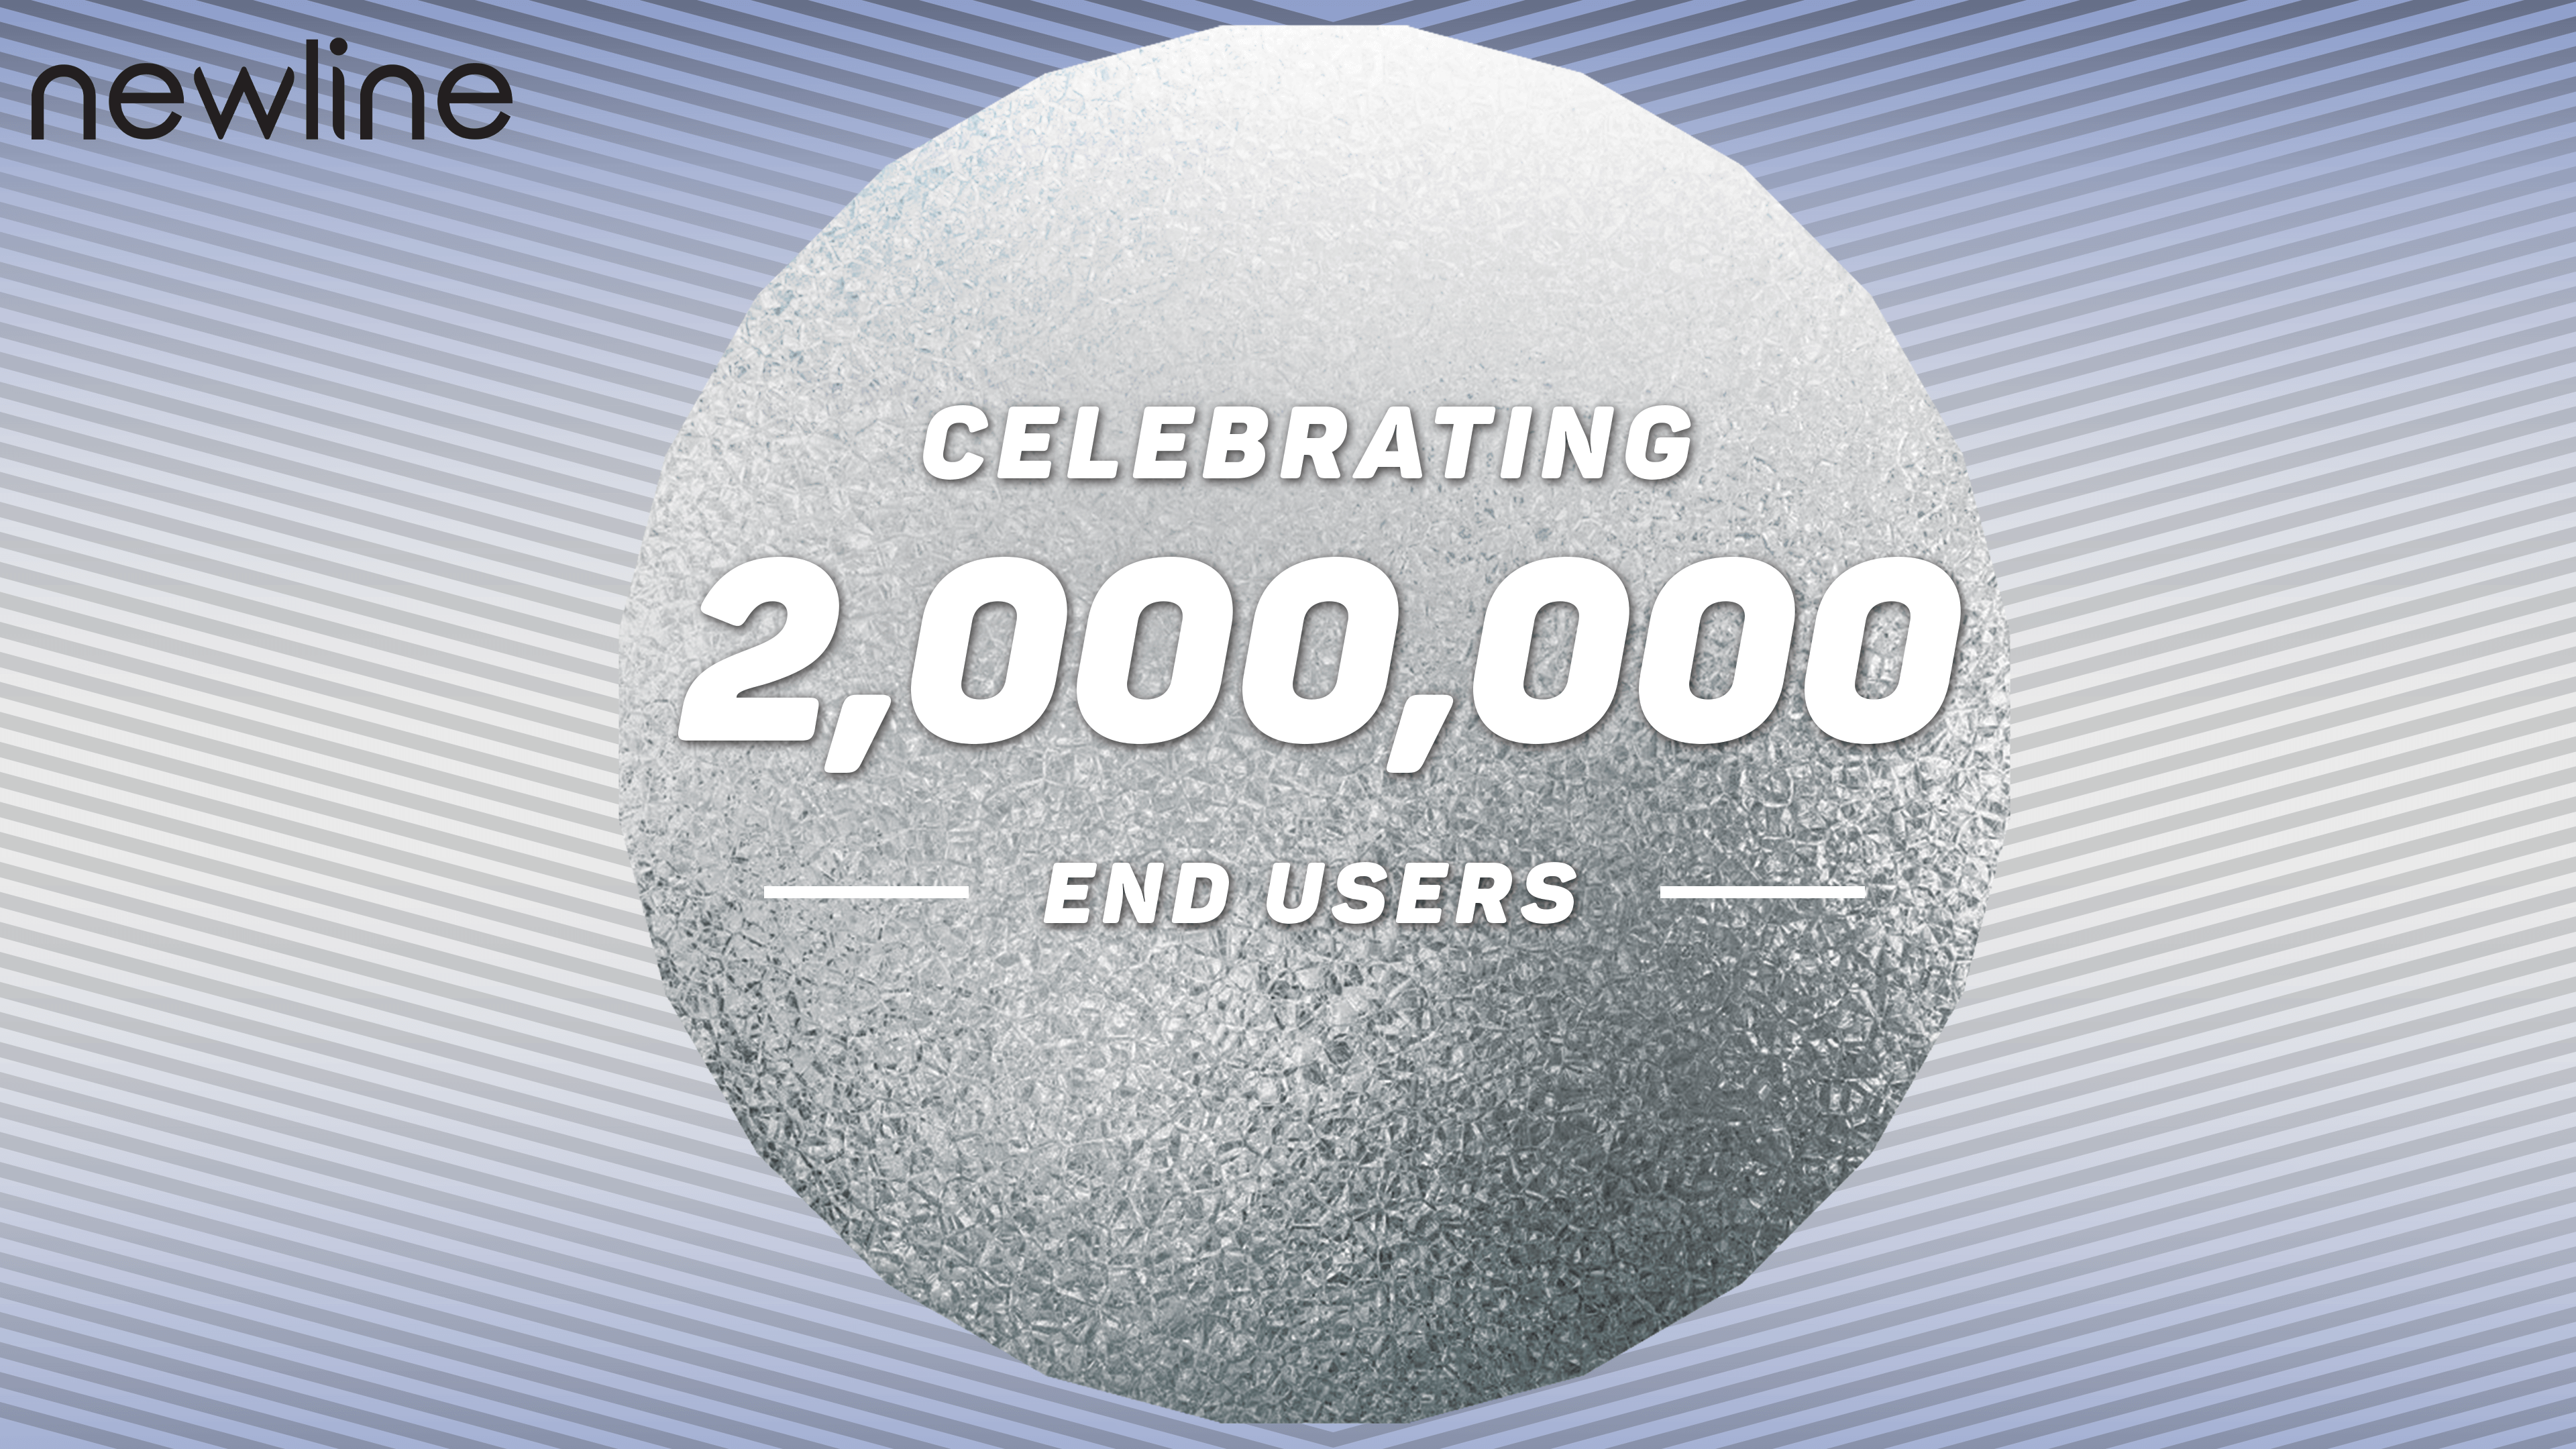 Newline Reaches 2 Million Users In Its Eighth Year